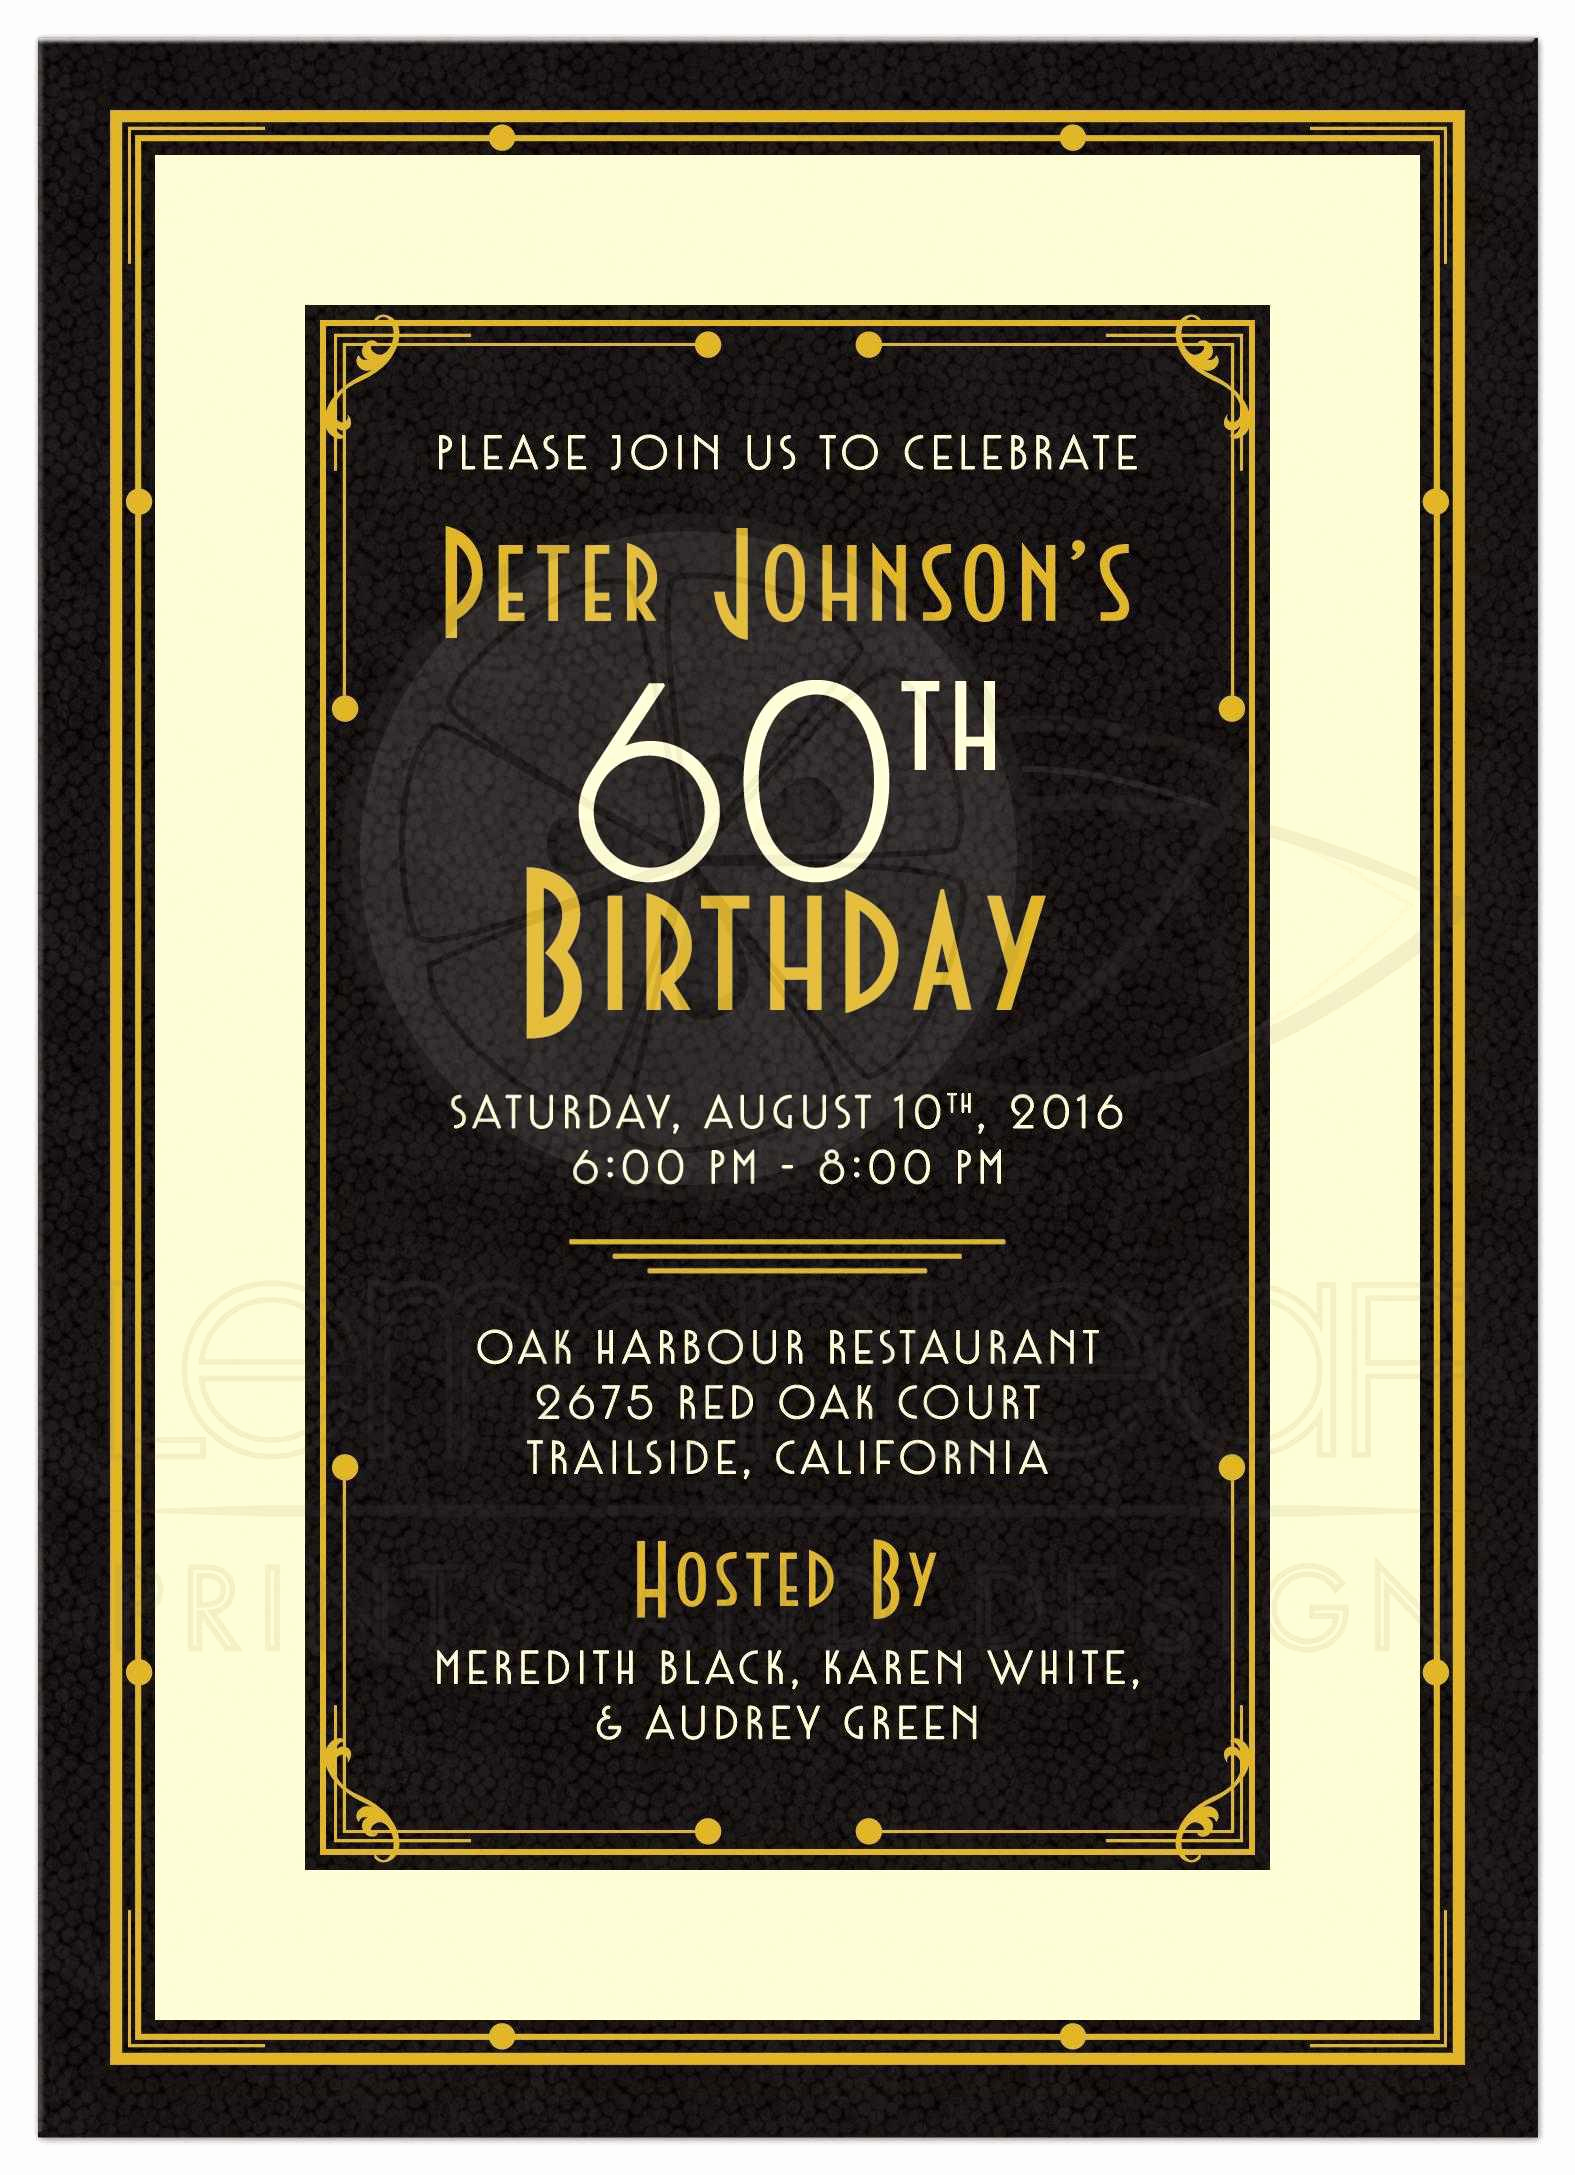 60th Birthday Invitations Template Inspirational 60th Birthday Party Invitations